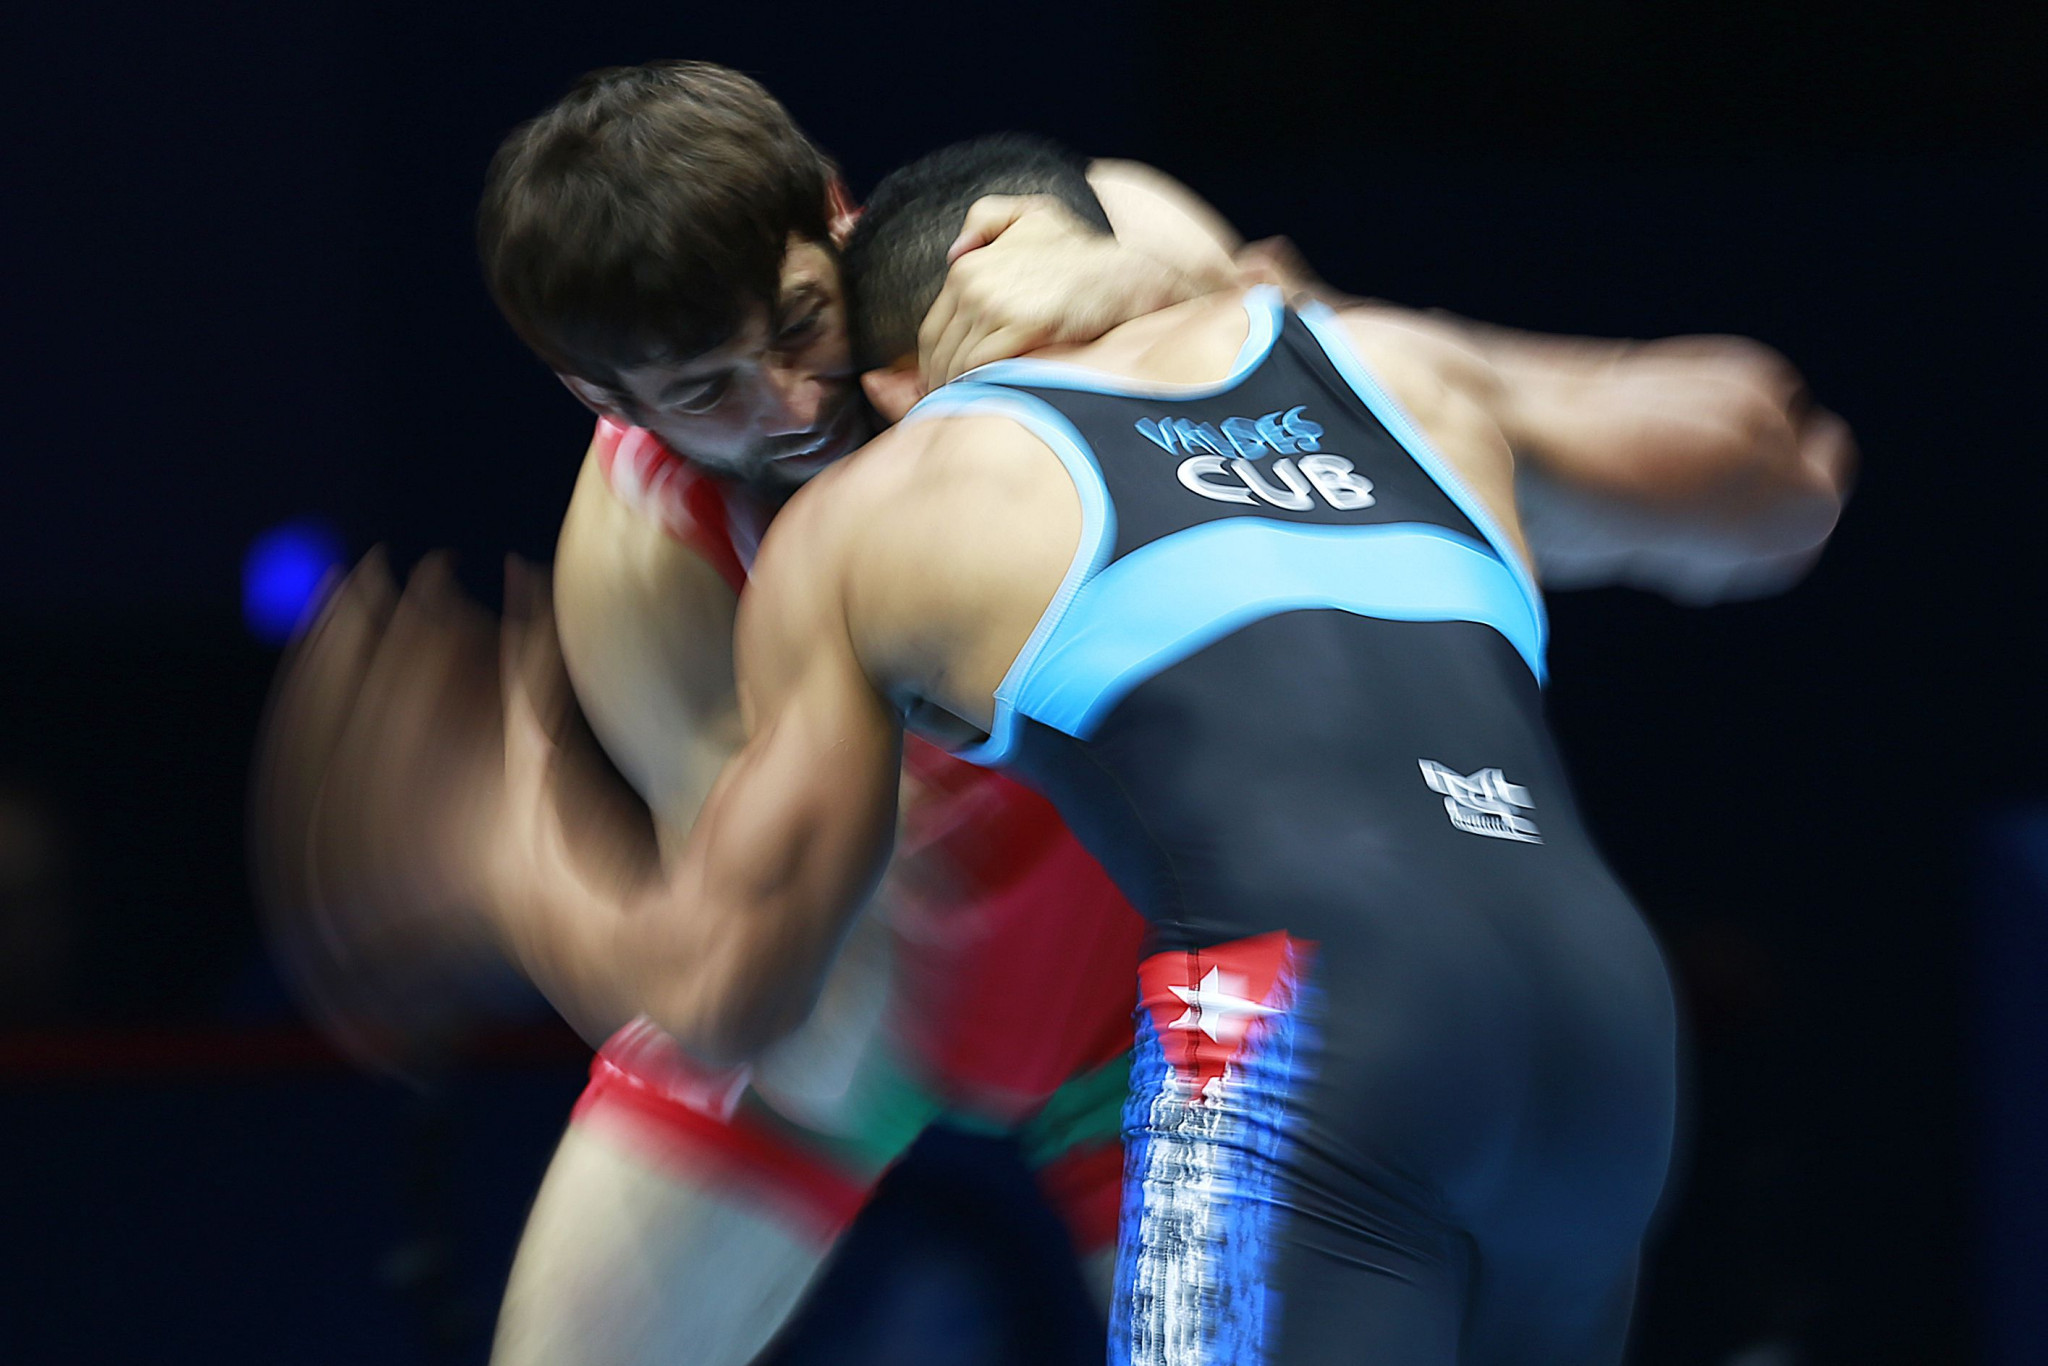 Cuban wrestling has been boosted by the UWW assistance programme ©Getty Images